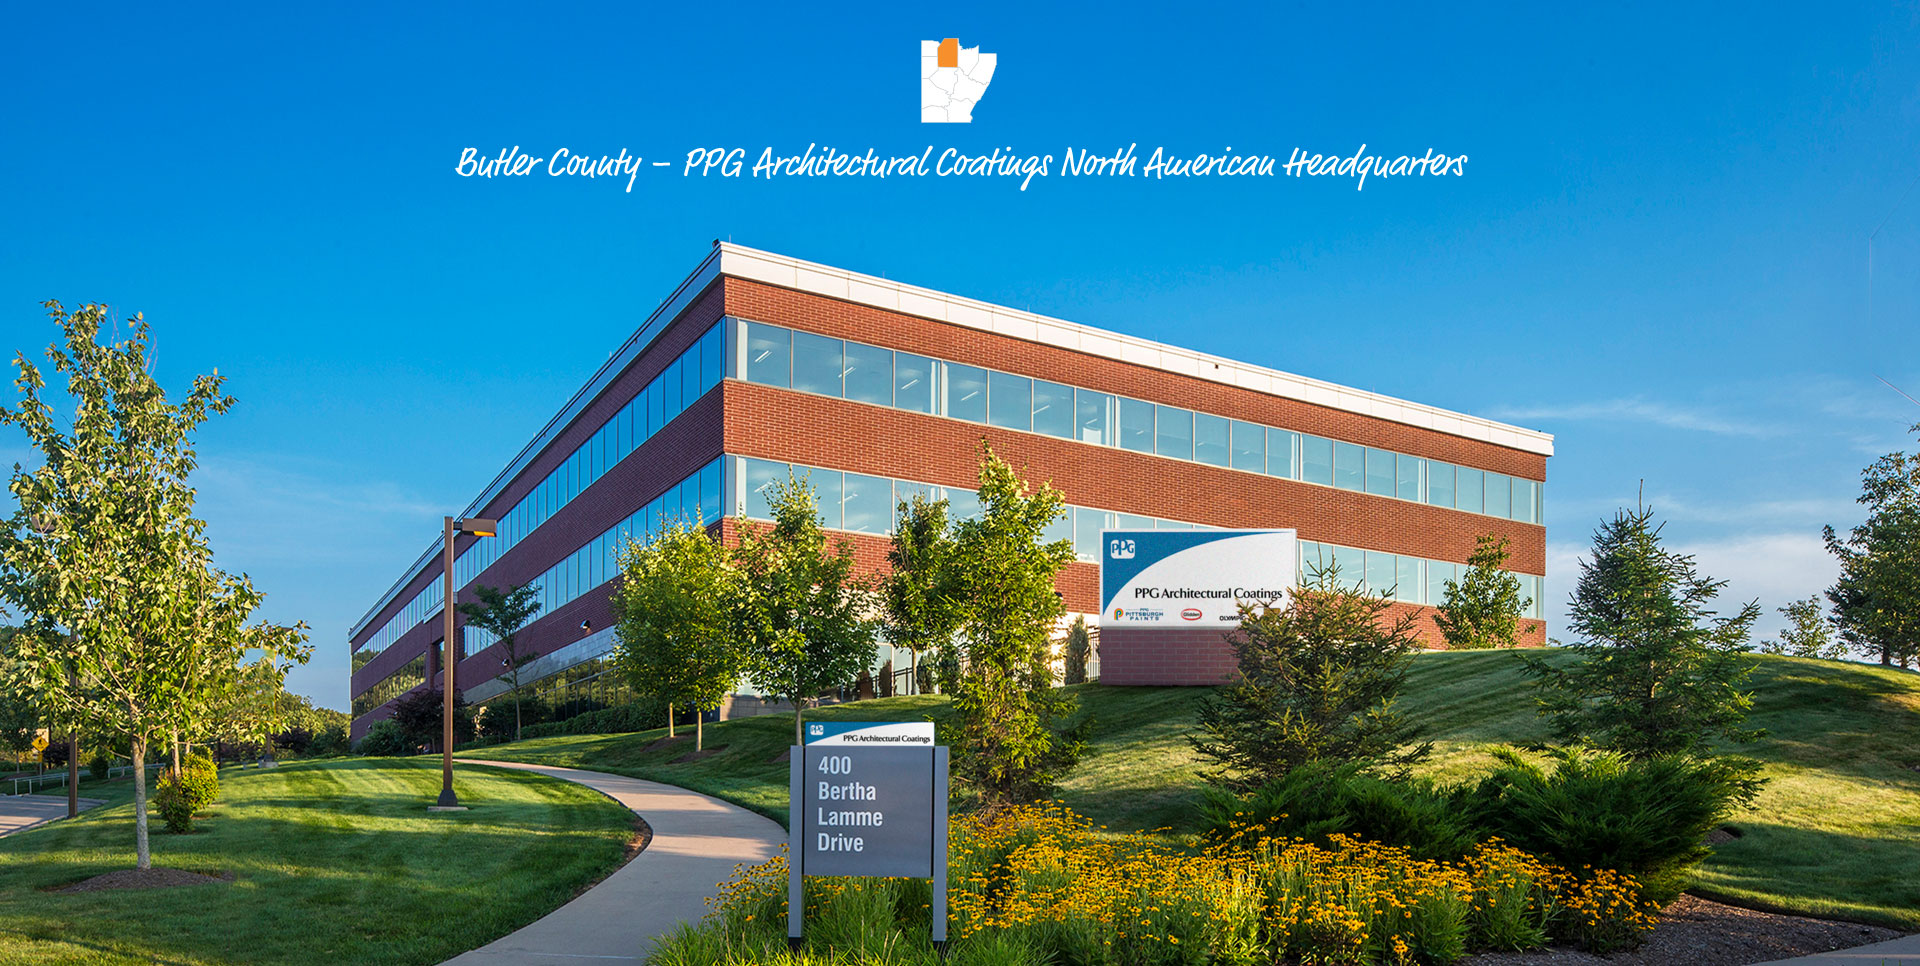 Butler County – PPG Architectural Coatings North American Headquarters